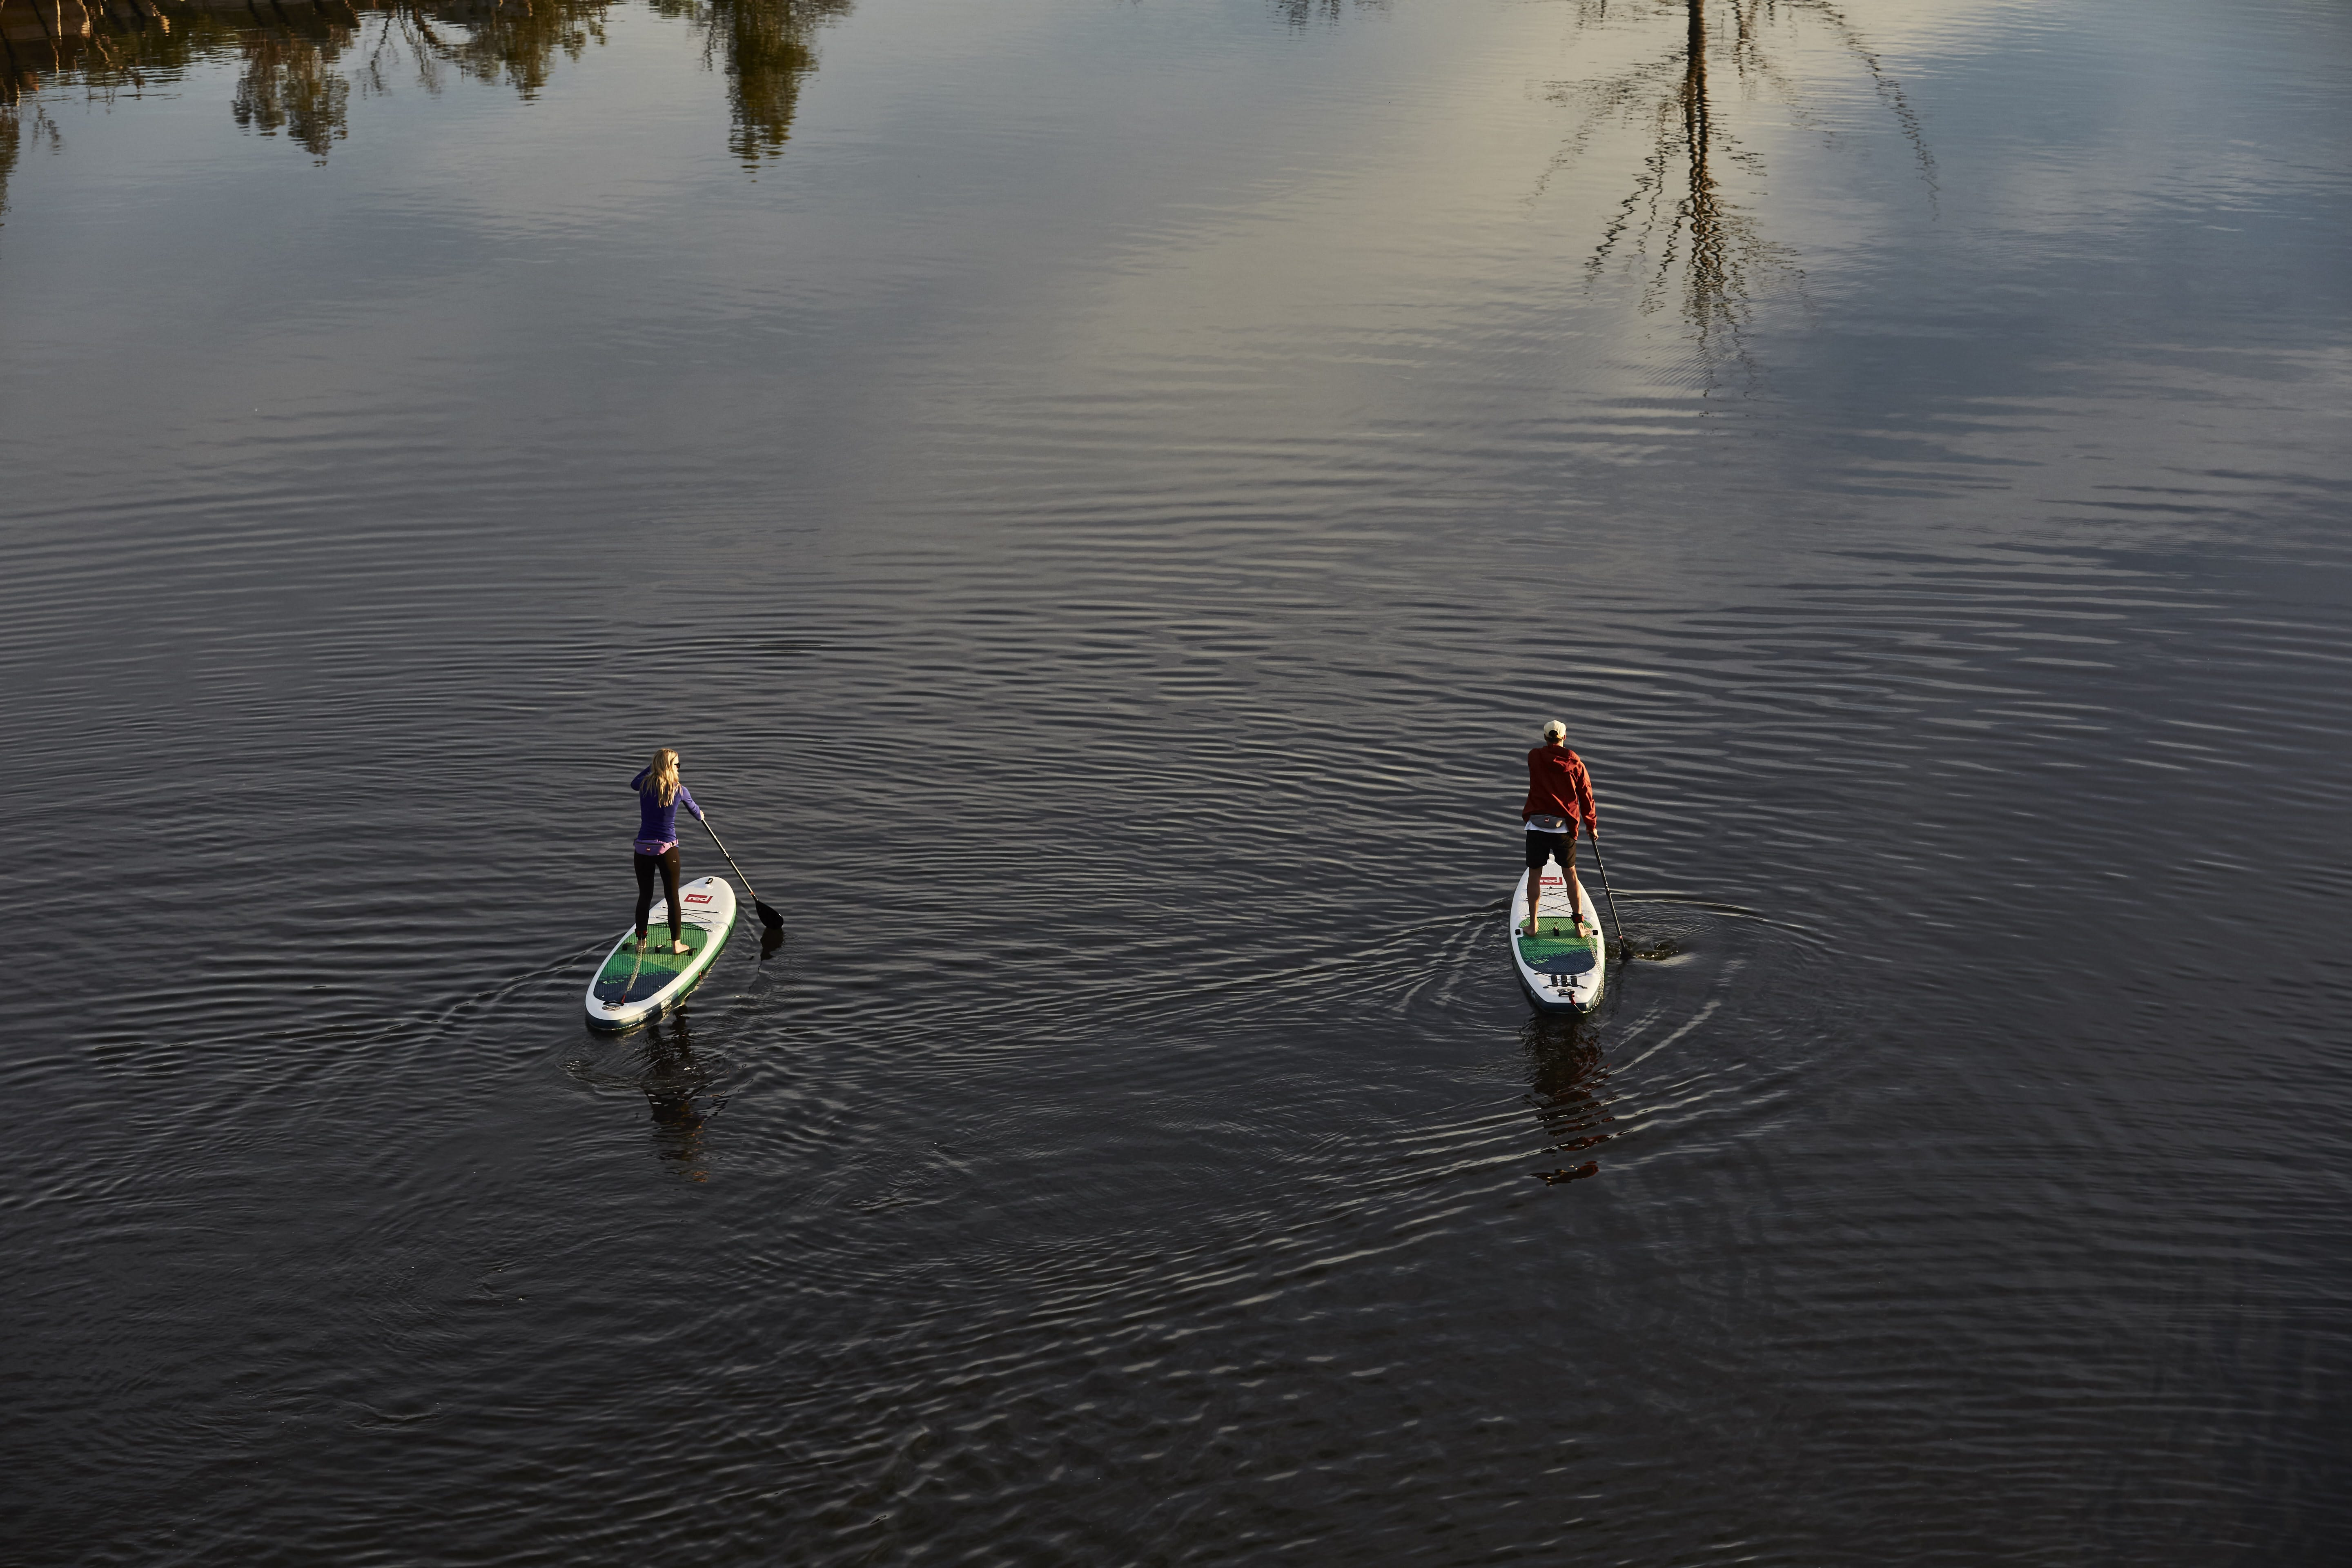 COVID-19 Paddling Tips: Practicing Social Distance on the Water